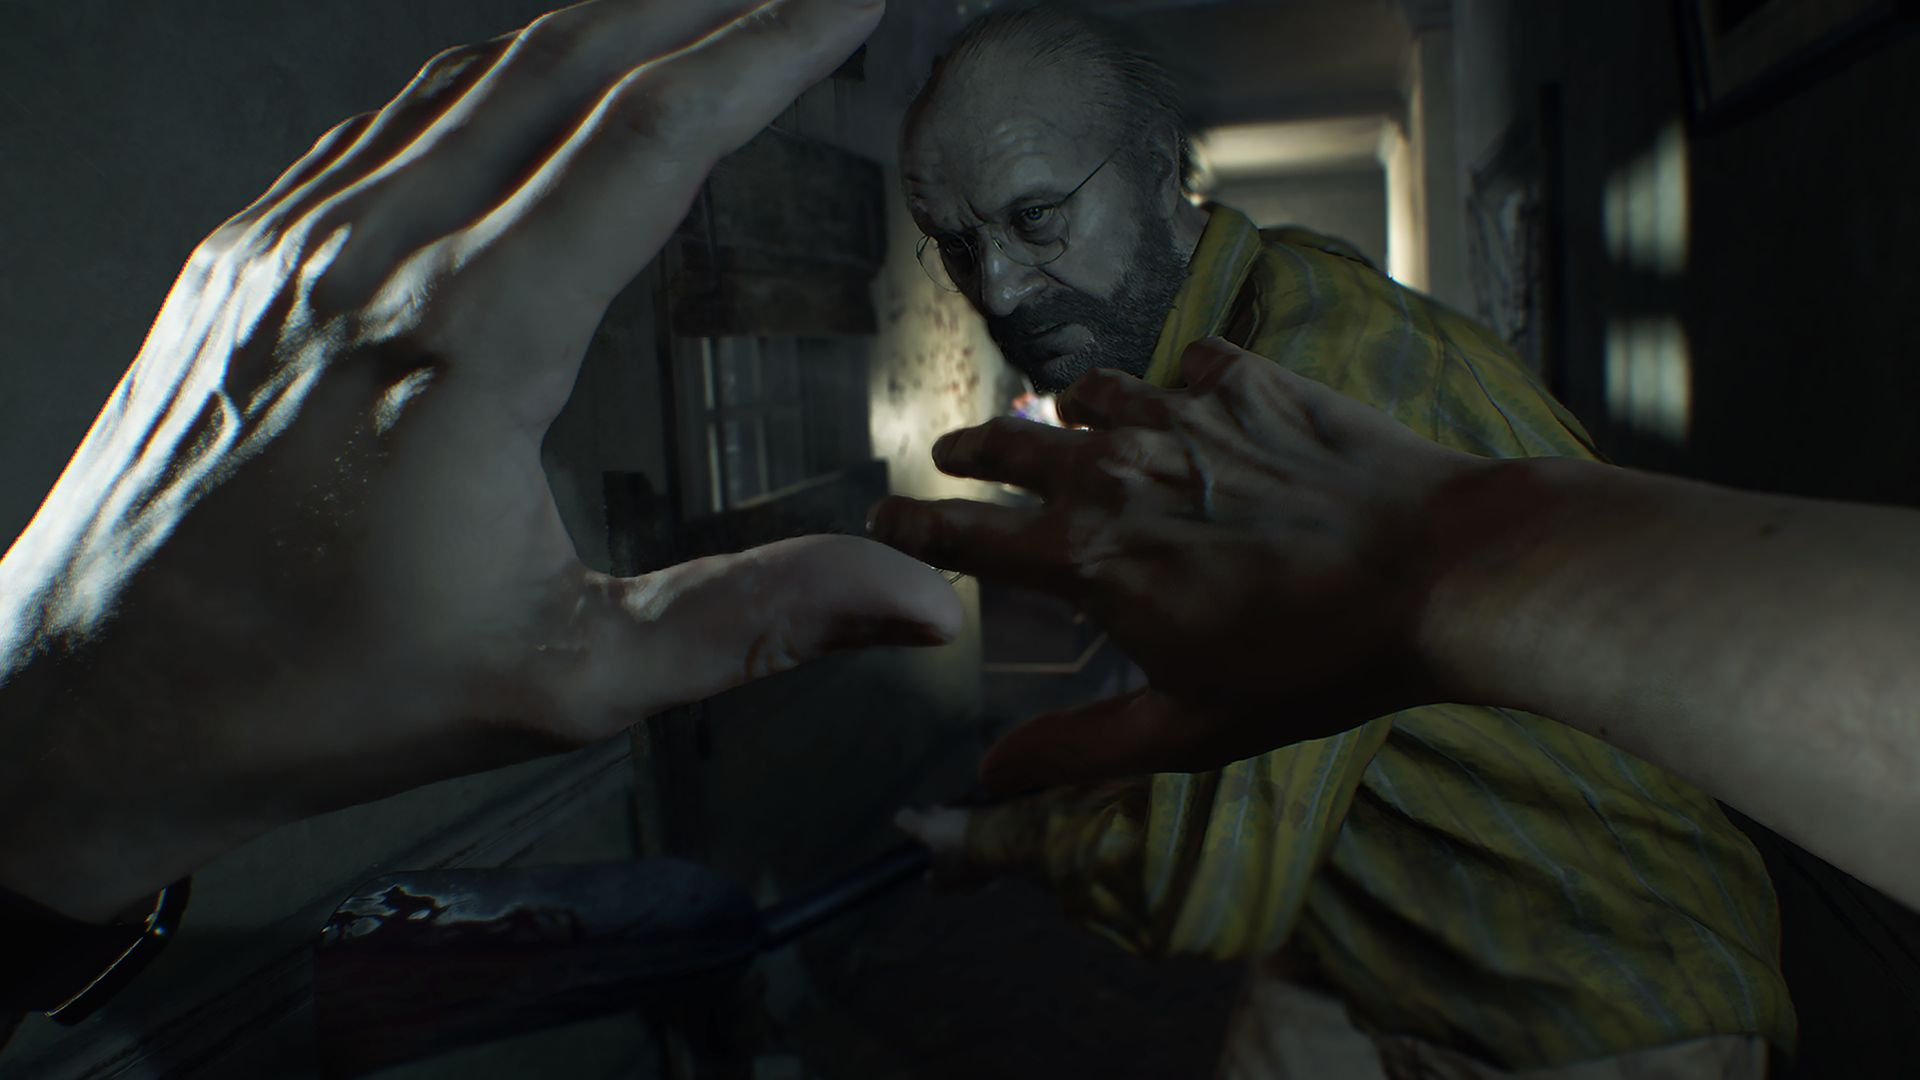 Review: Resident Evil 7: Biohazard is True Survival Horror 1